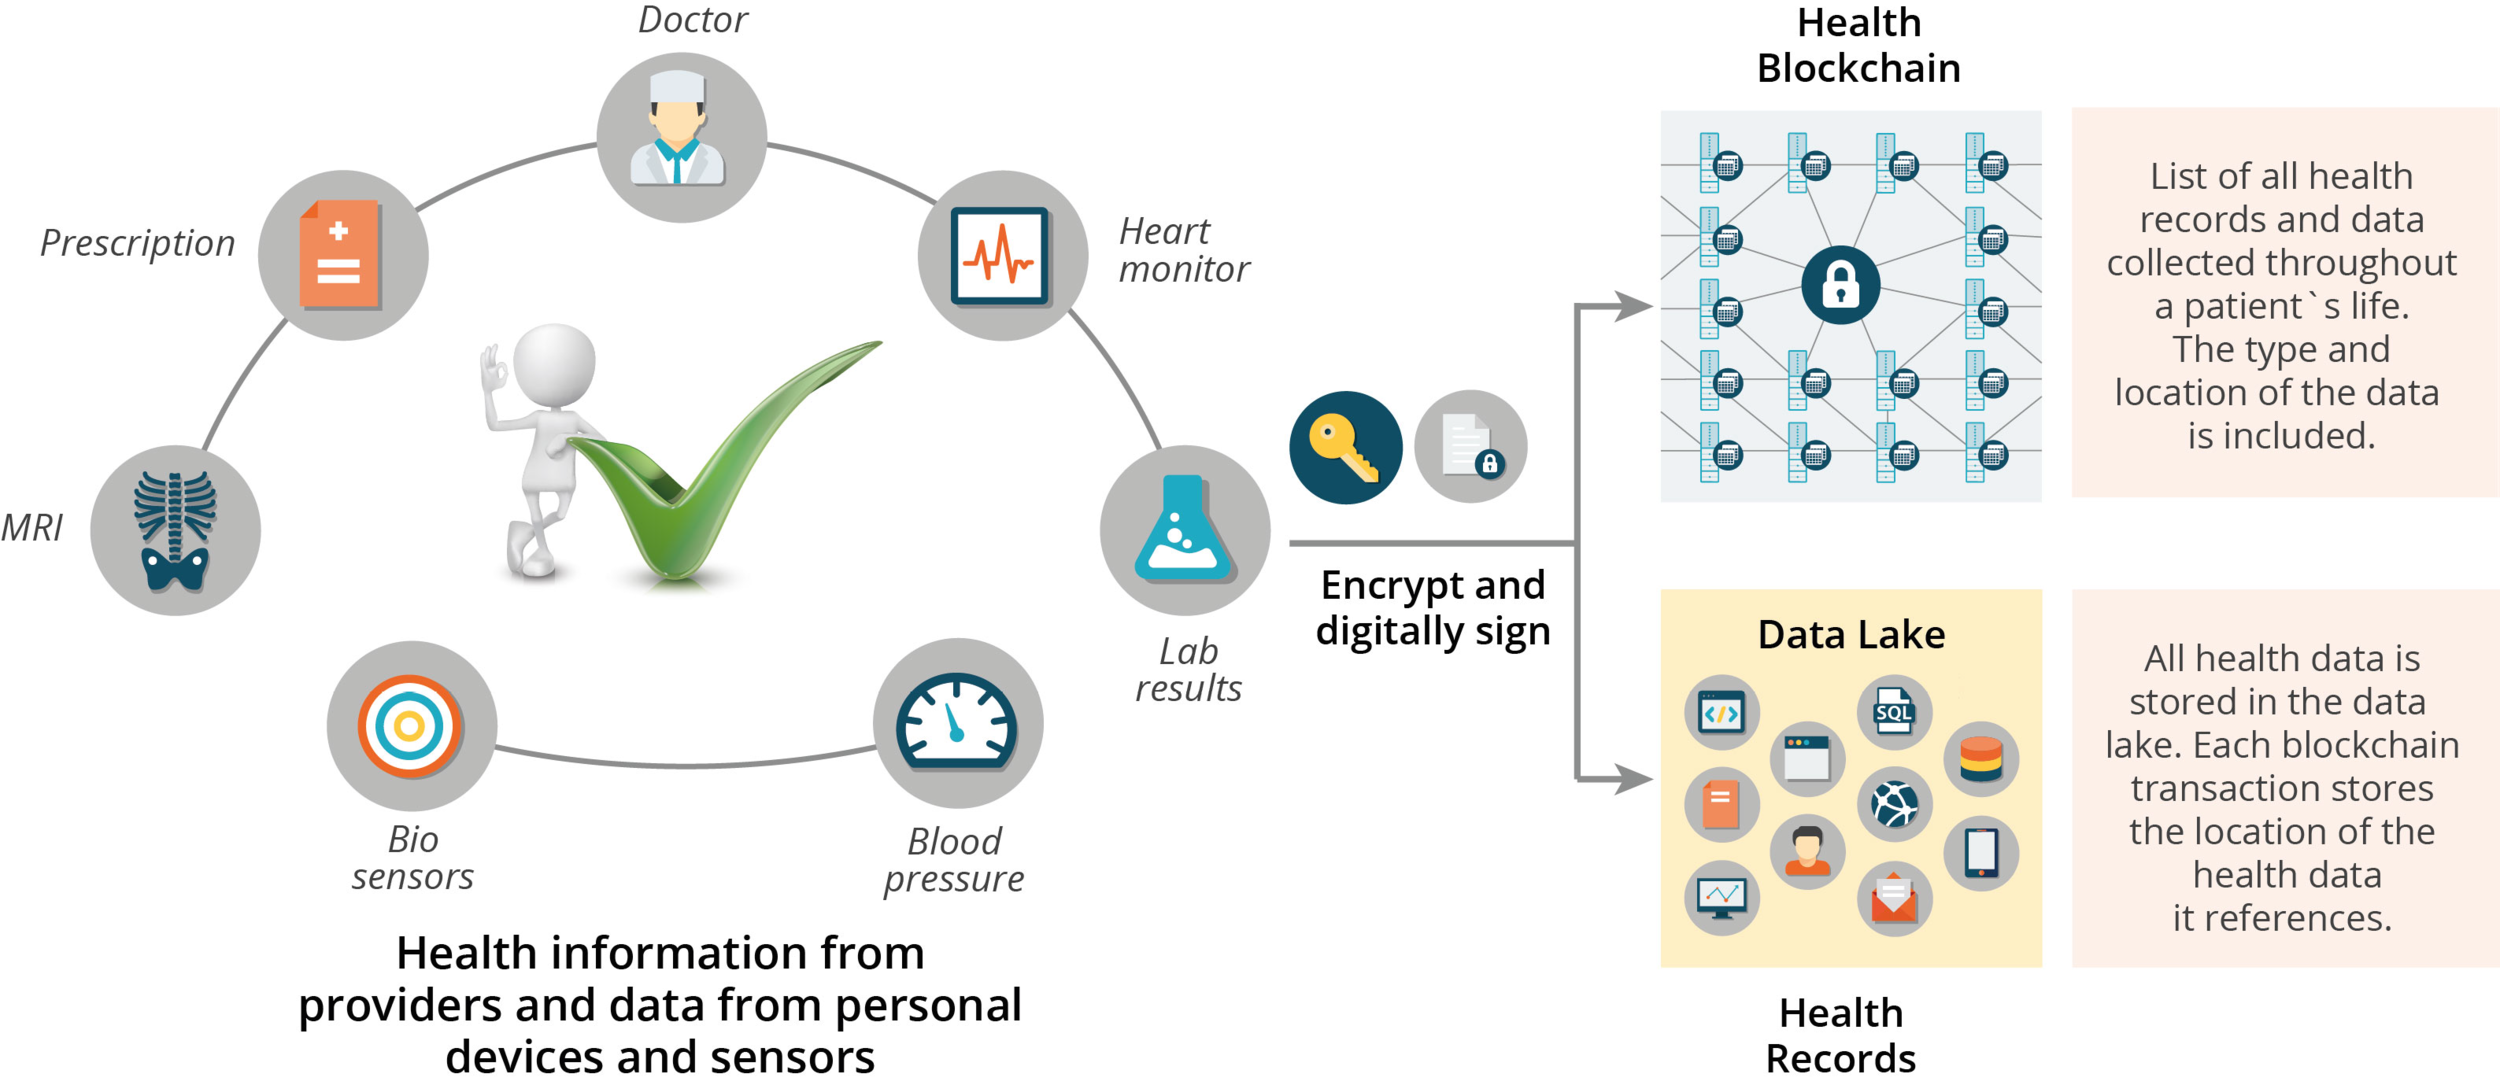 Blockchain For Health Data and Its Potential Use in Health IT and Health Care Related Research - Linn, Koo.